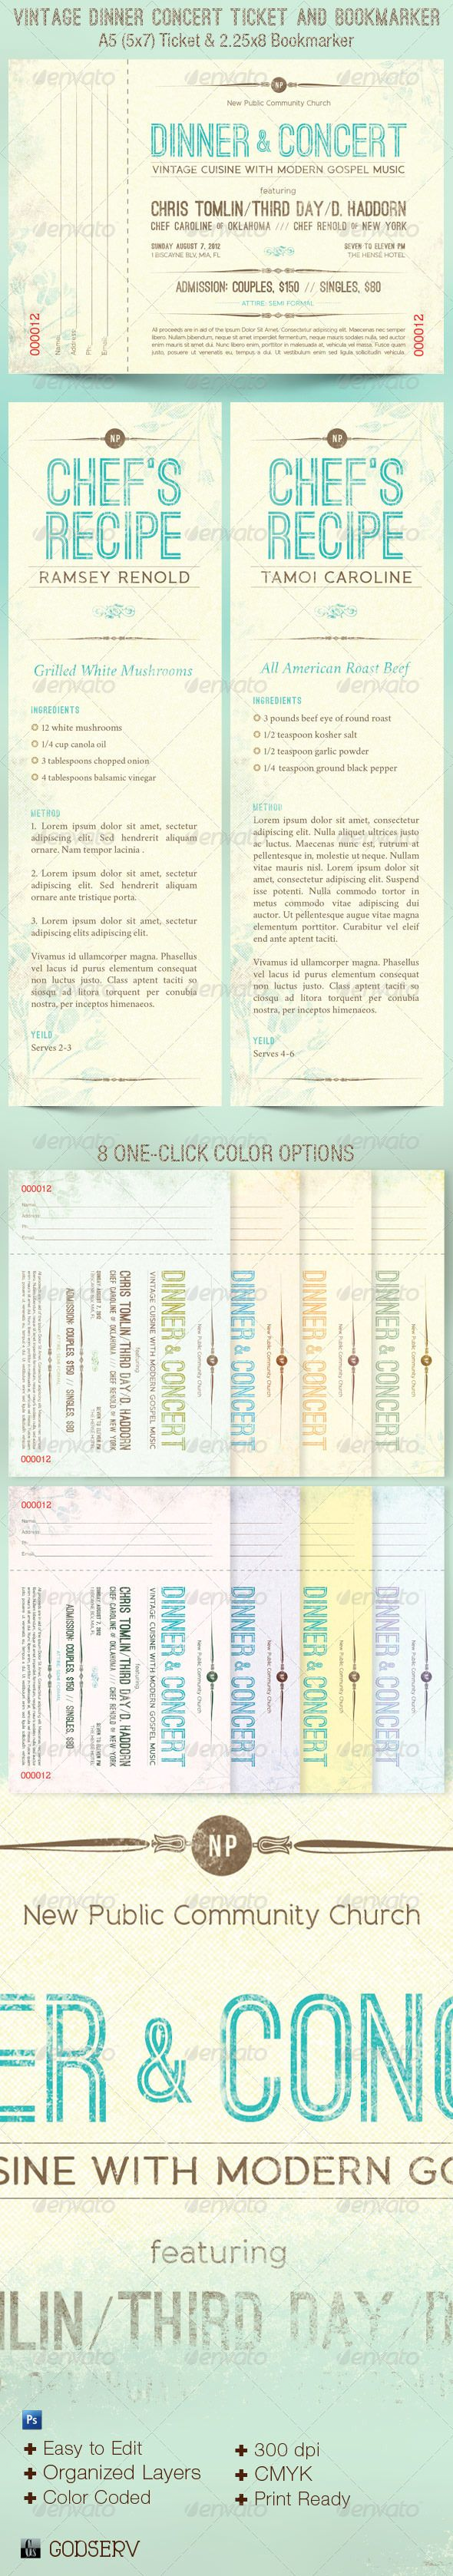 Concert Ticket Template Free Download Cool Vintage Dinner Concert Ticket Bookmarker  Celebration Church .